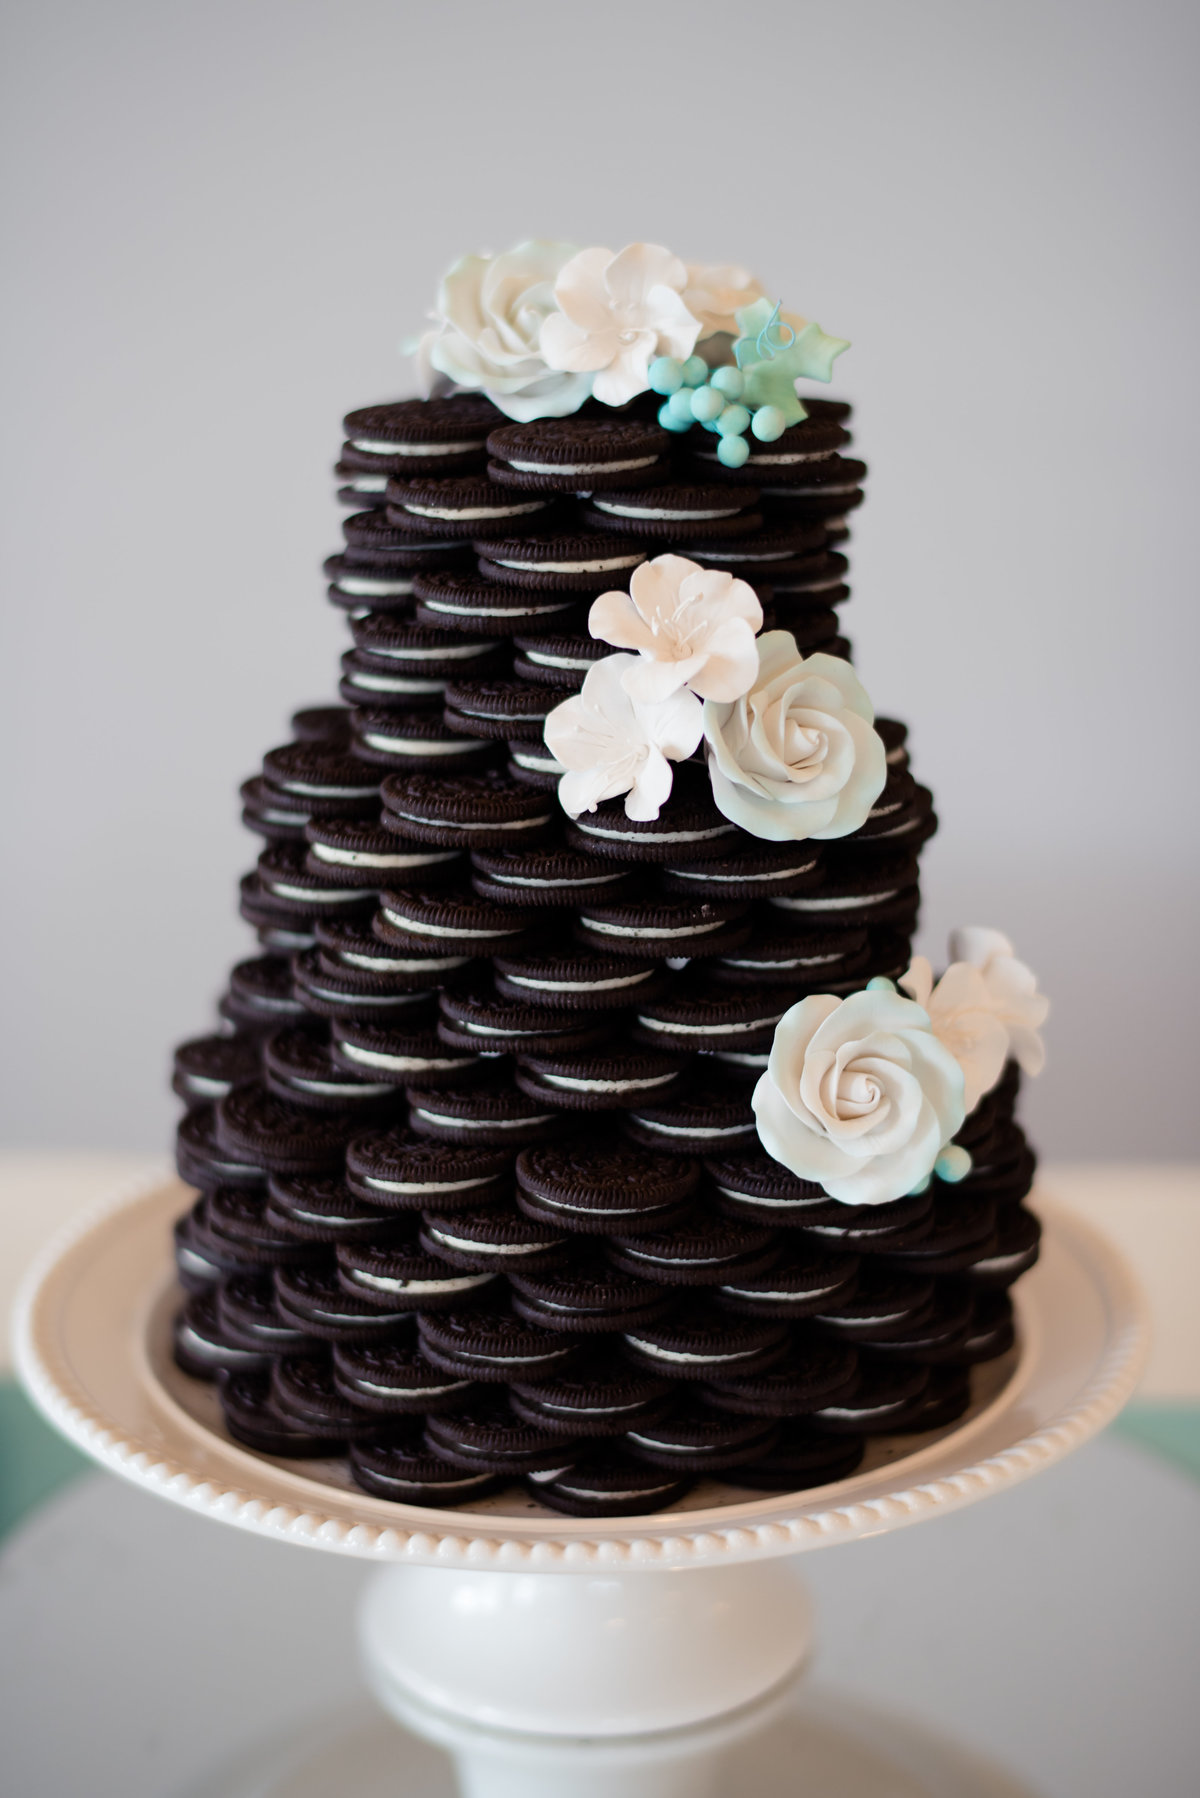 Oreo wedding cake by Brittany Barclay Photography